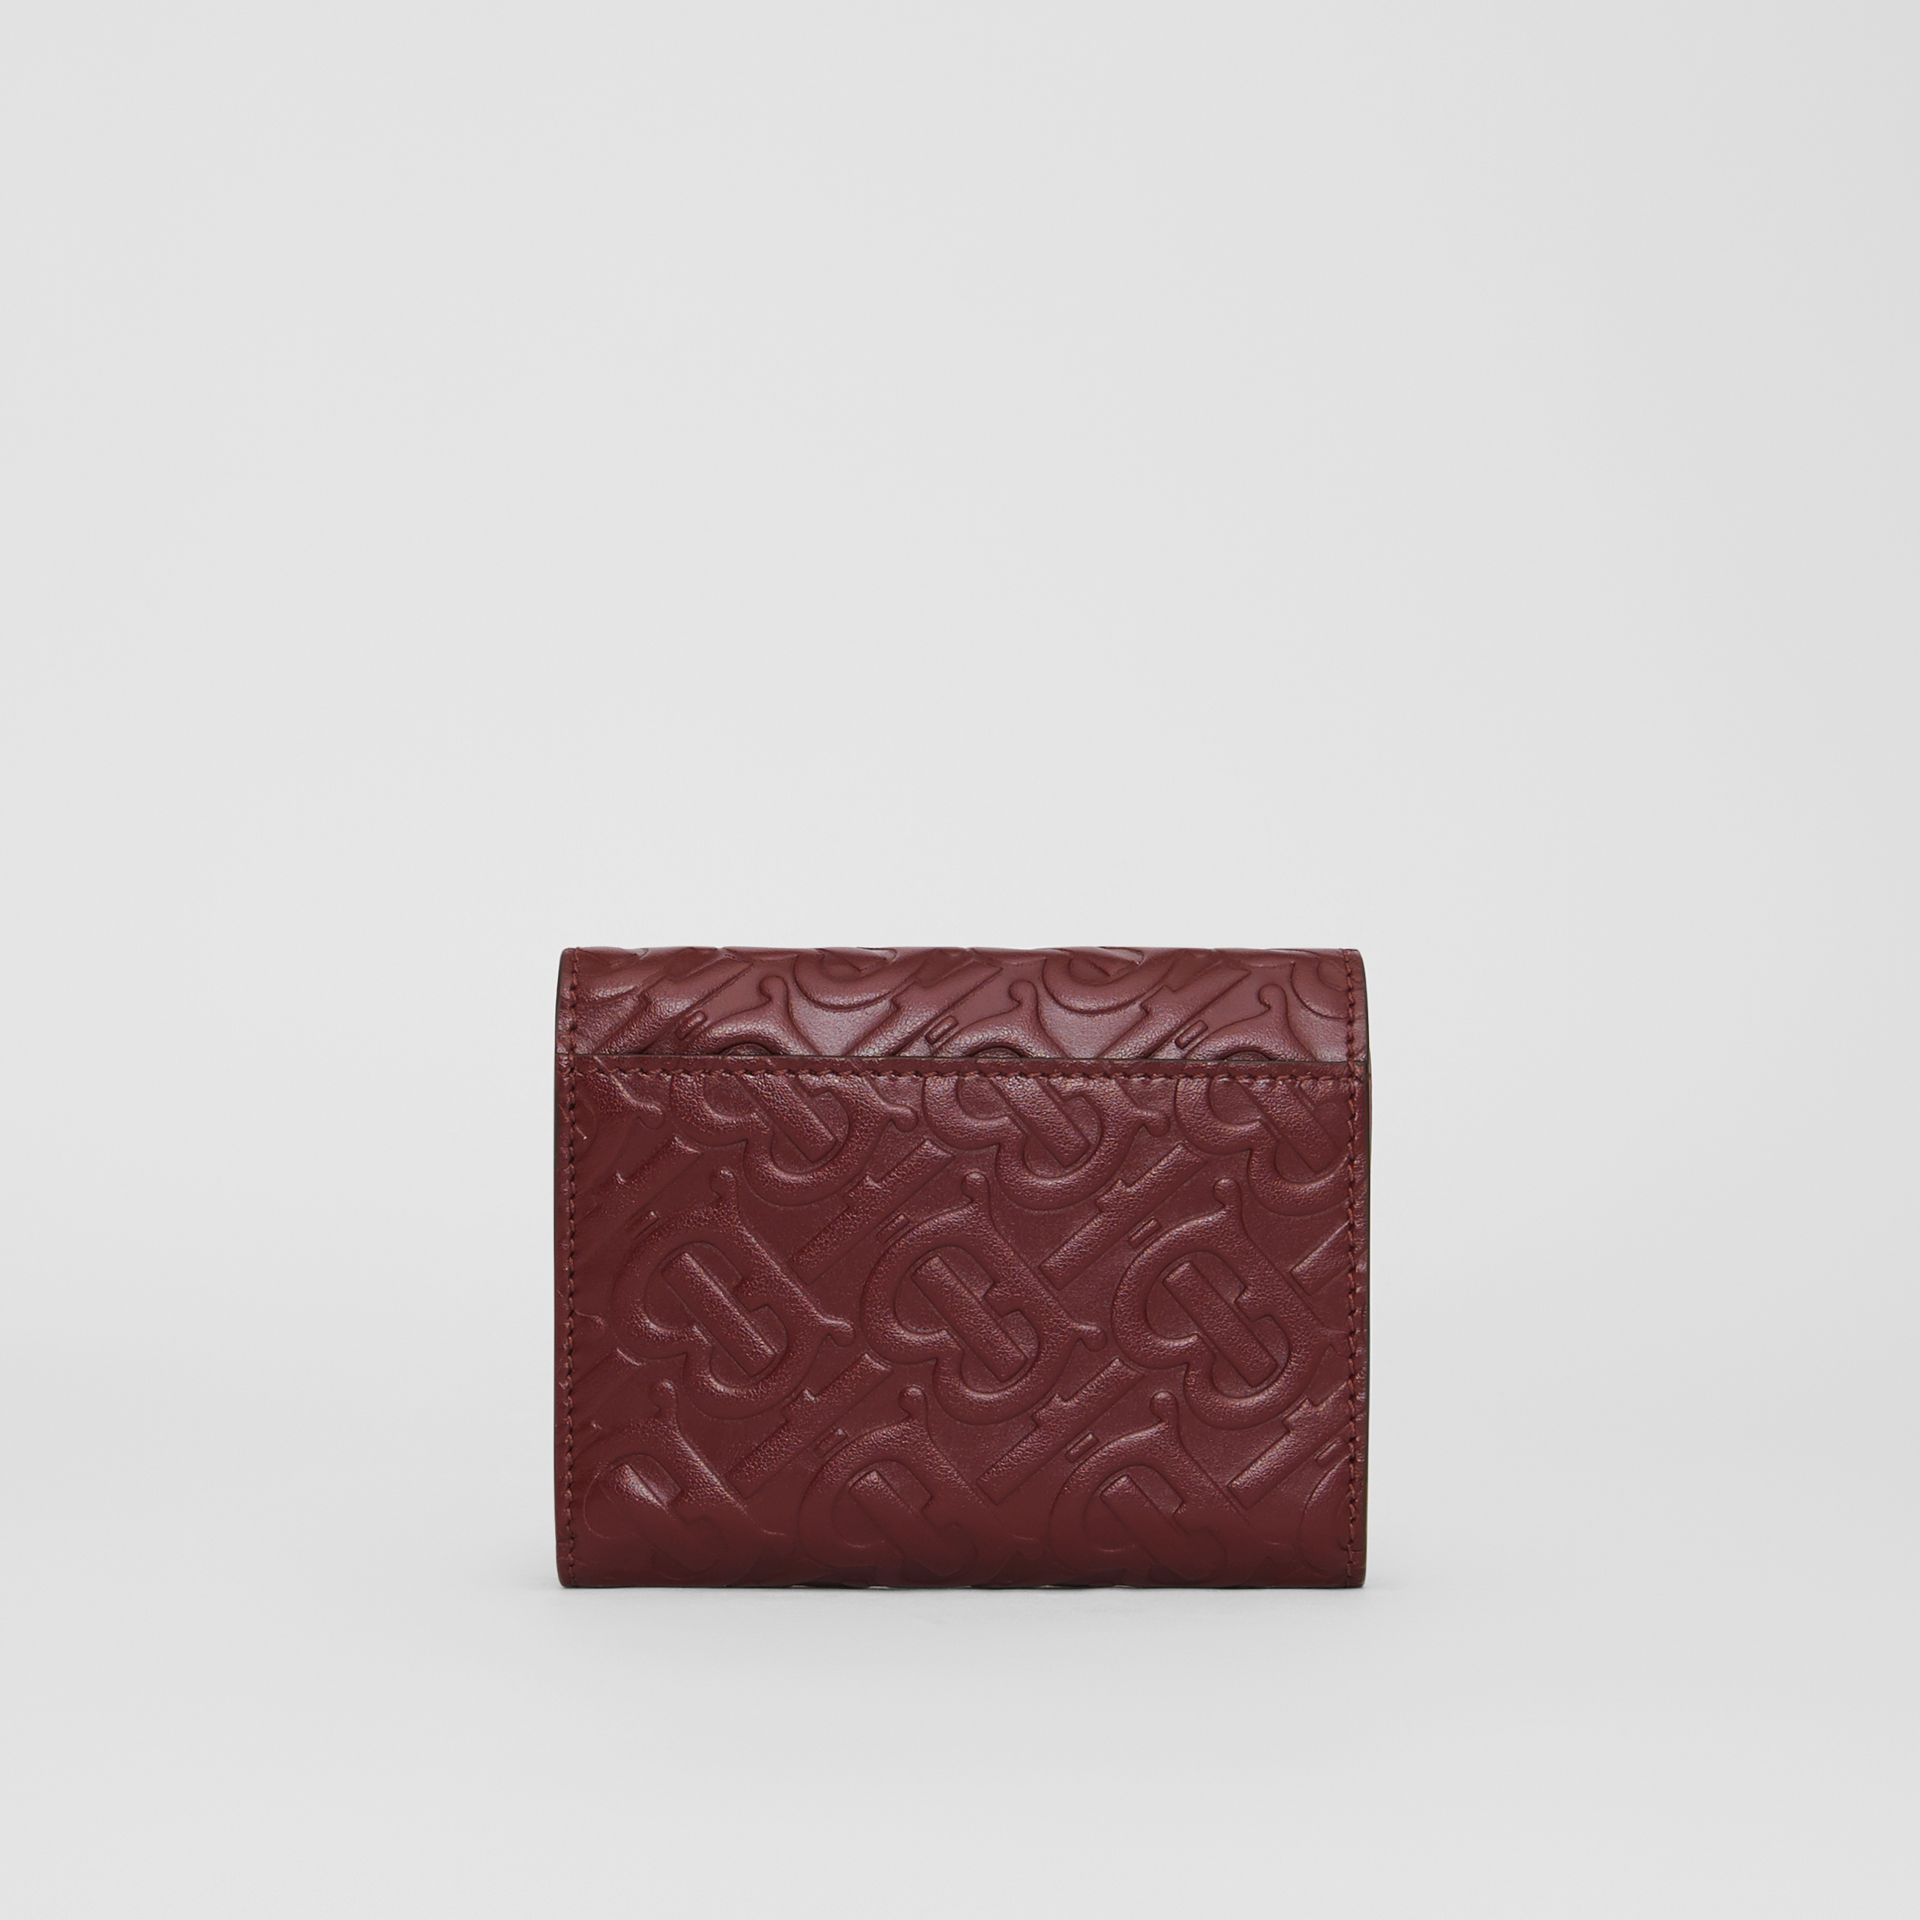 Small Monogram Leather Folding Wallet in Oxblood - Women | Burberry - gallery image 4